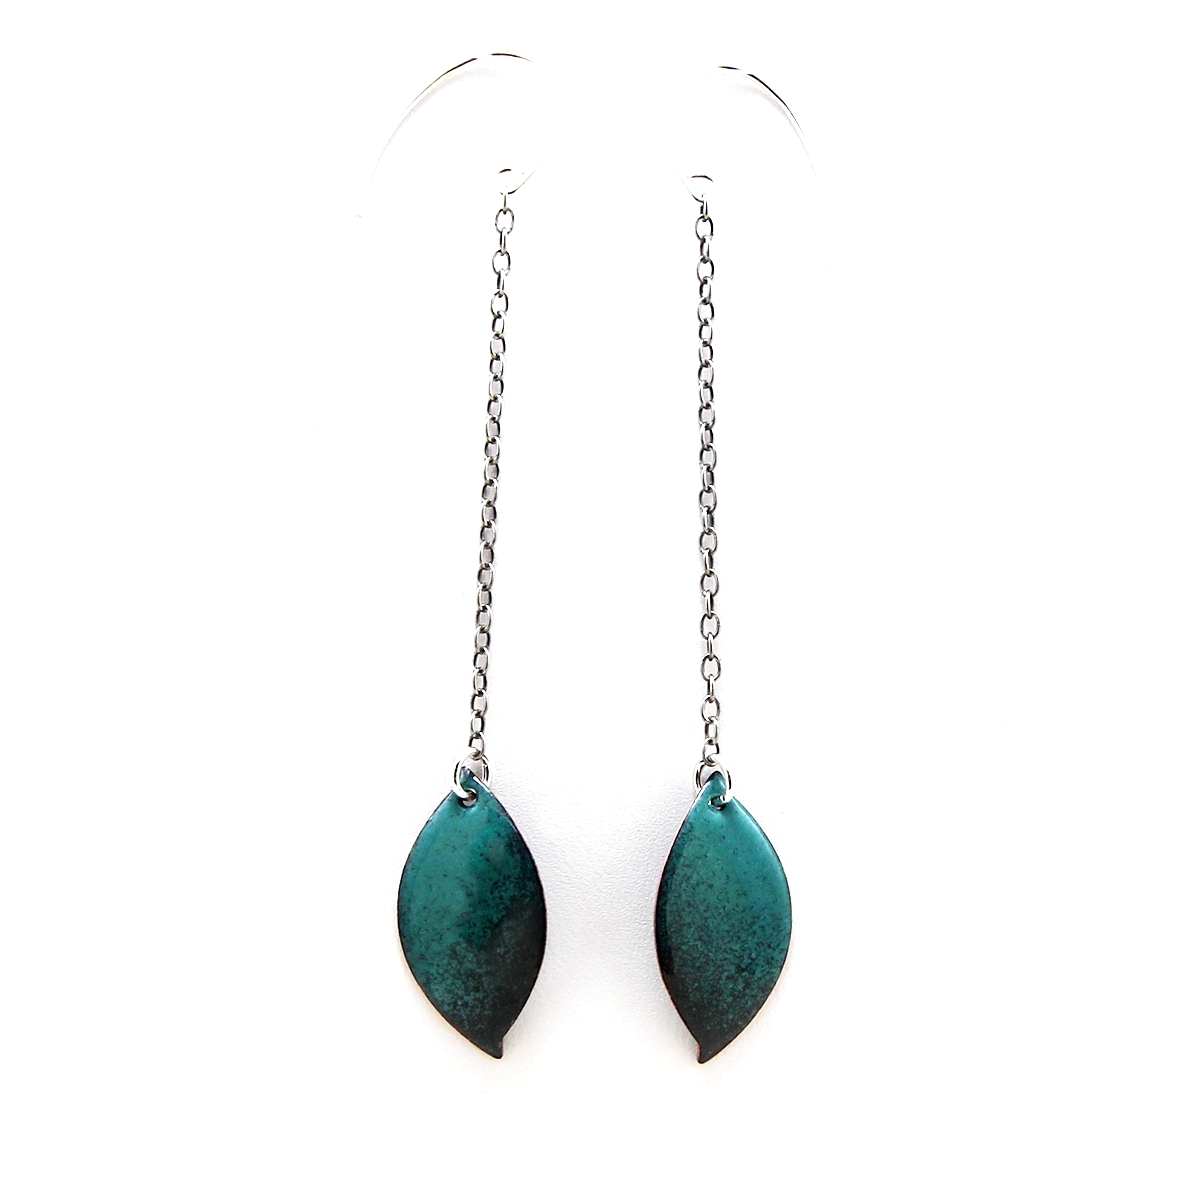 Drop Leaf Earrings ($50)